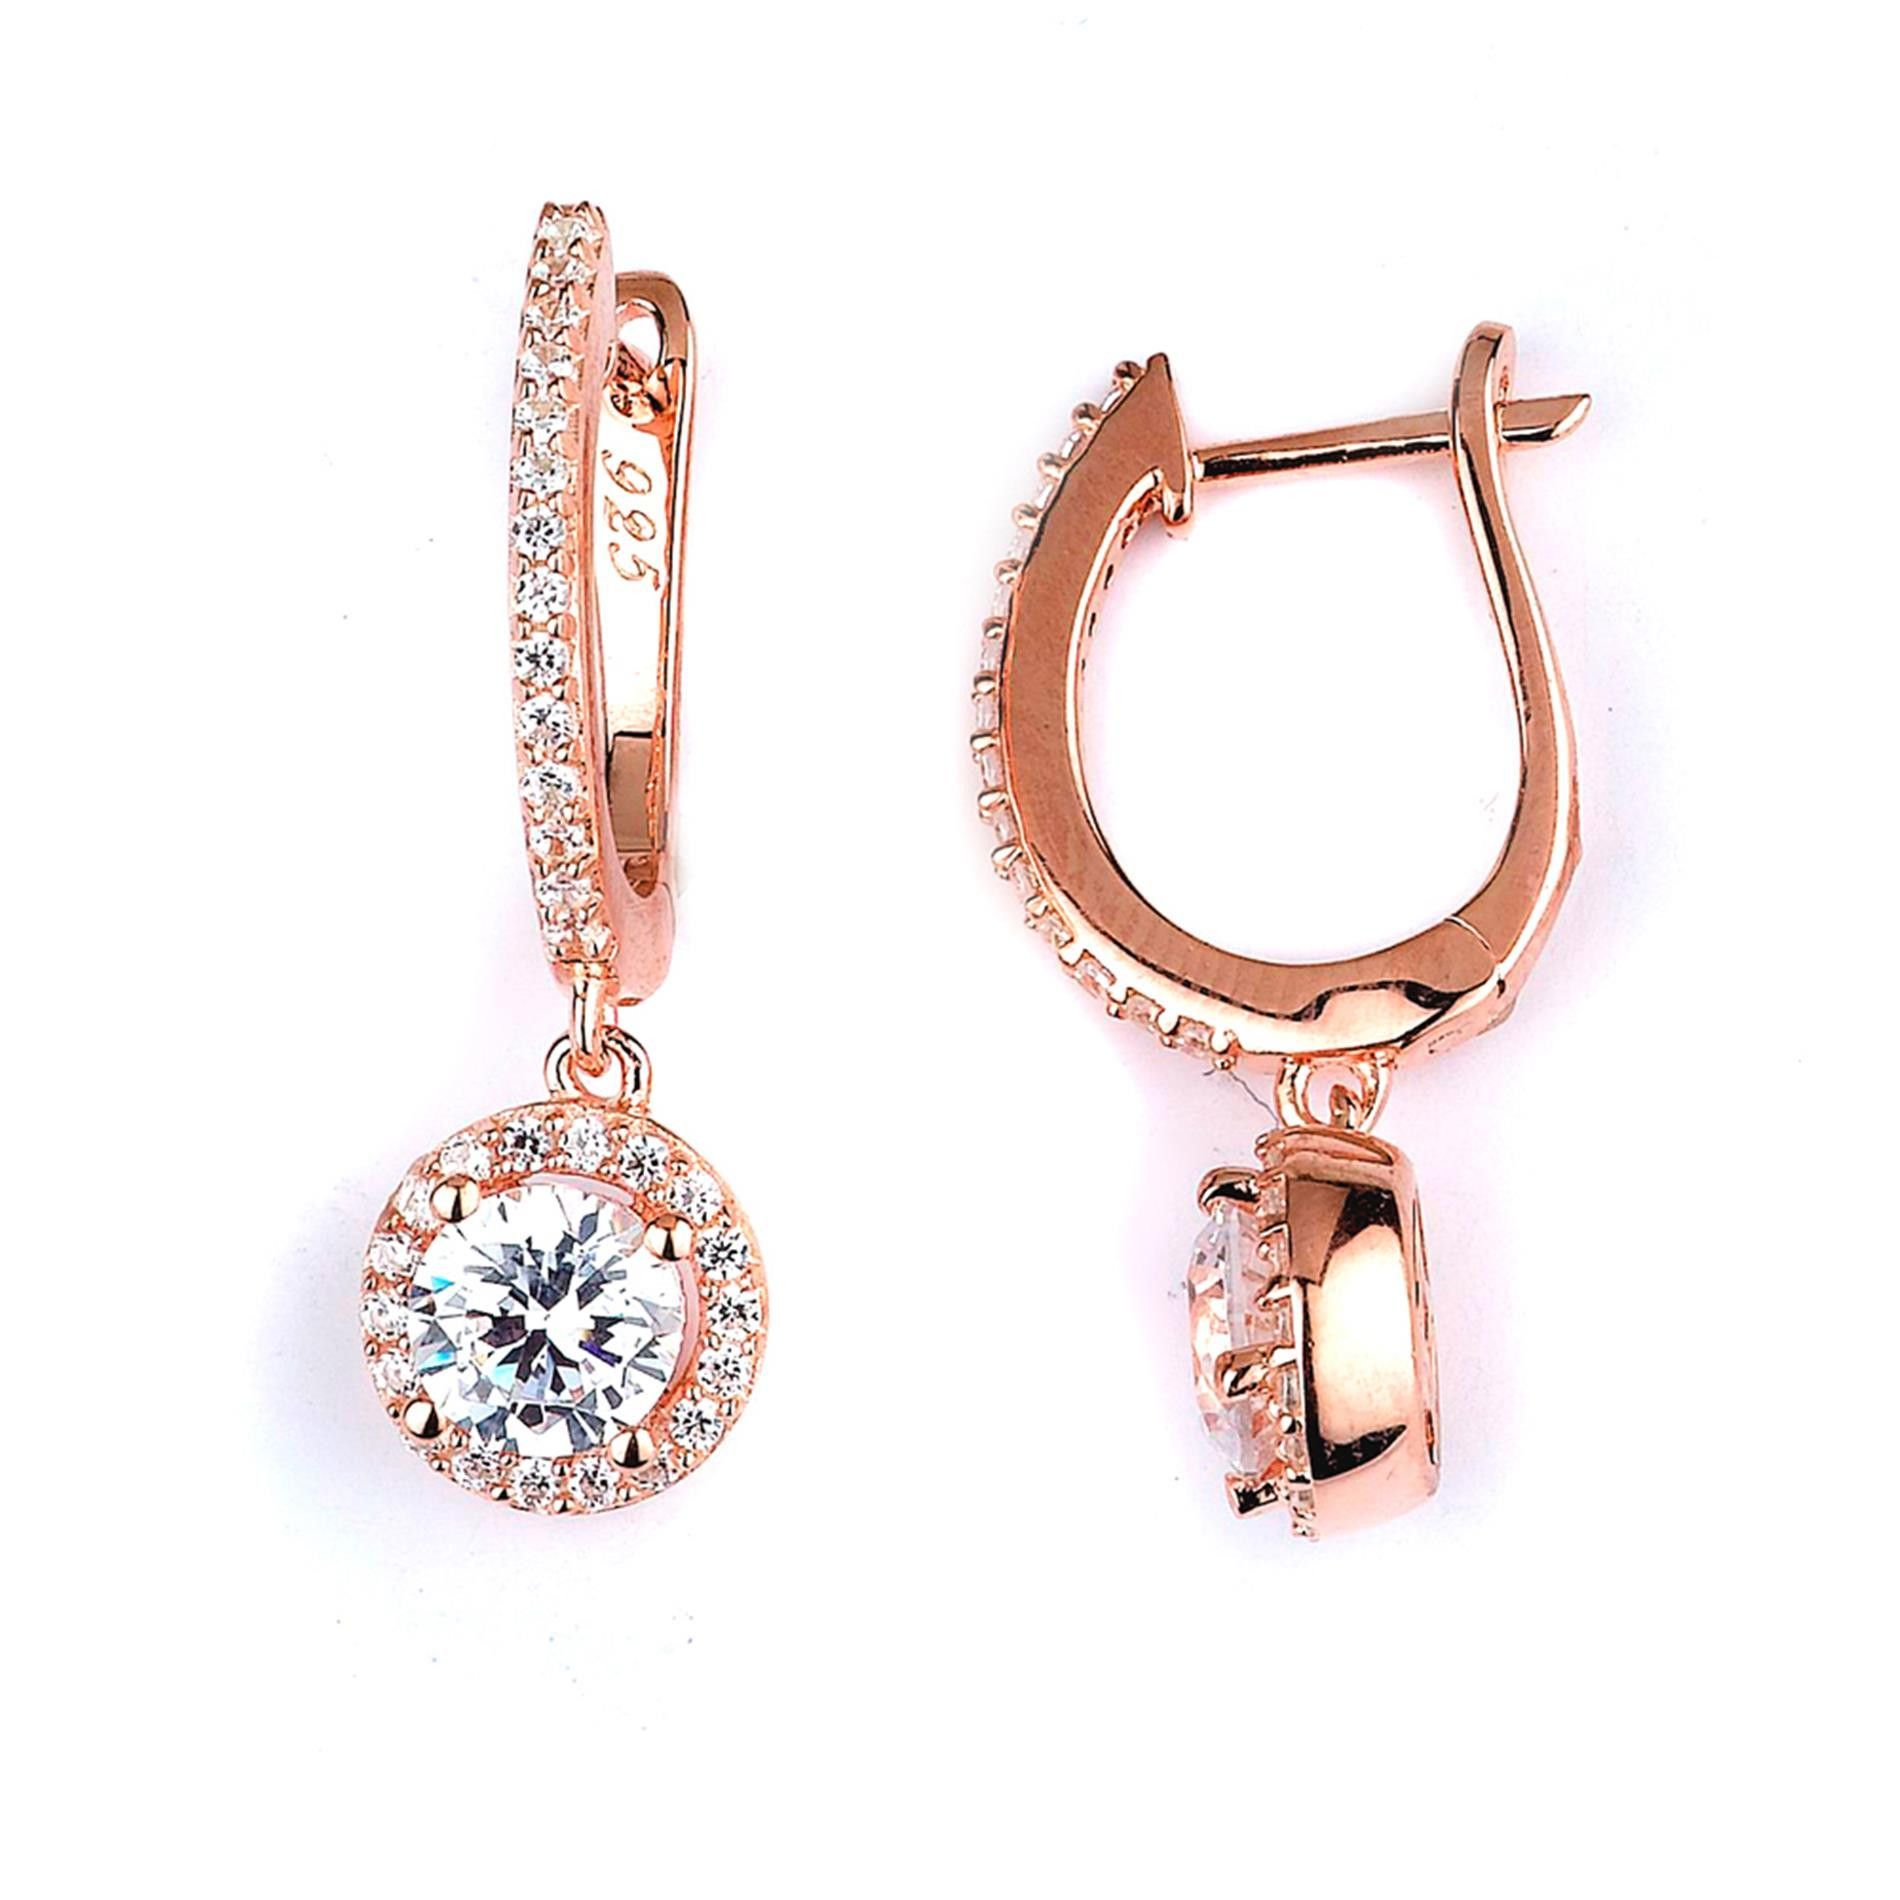 most know l hinged earring backs earrings need to you secure everything icecom back about